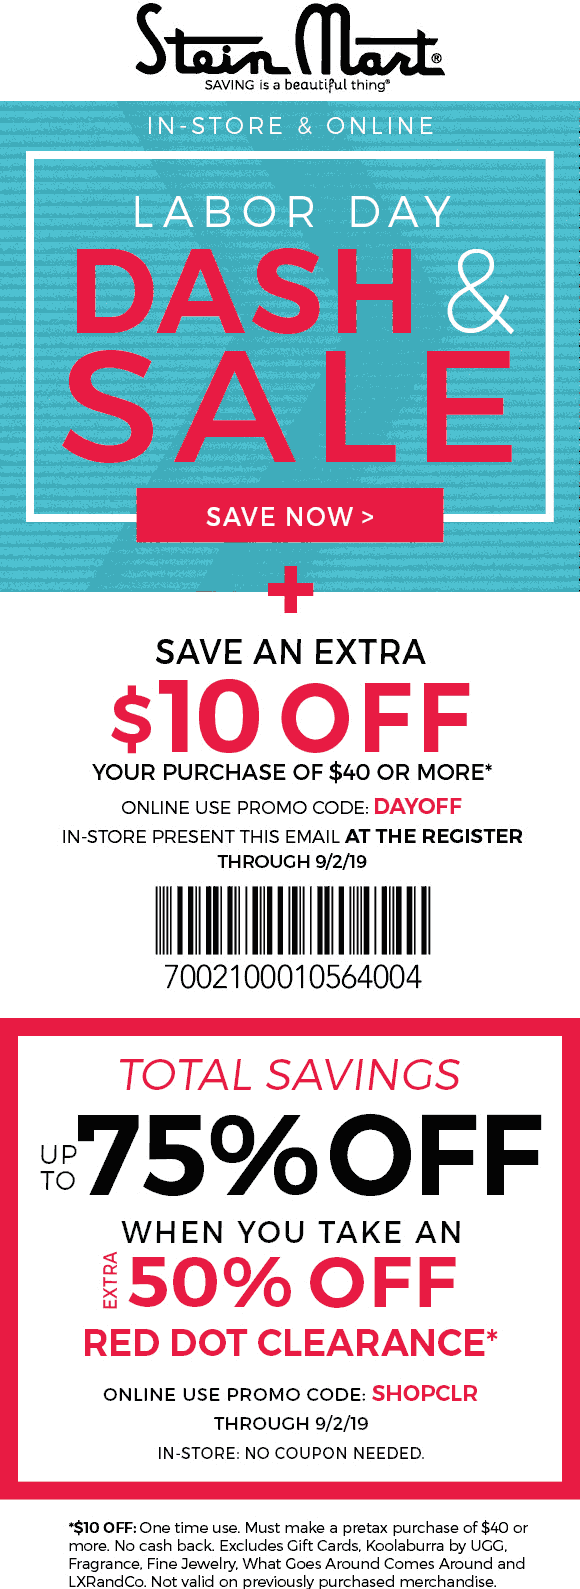 Stein Mart Coupon January 2020 $10 off $40 at Stein Mart, or online via promo code DAYOFF